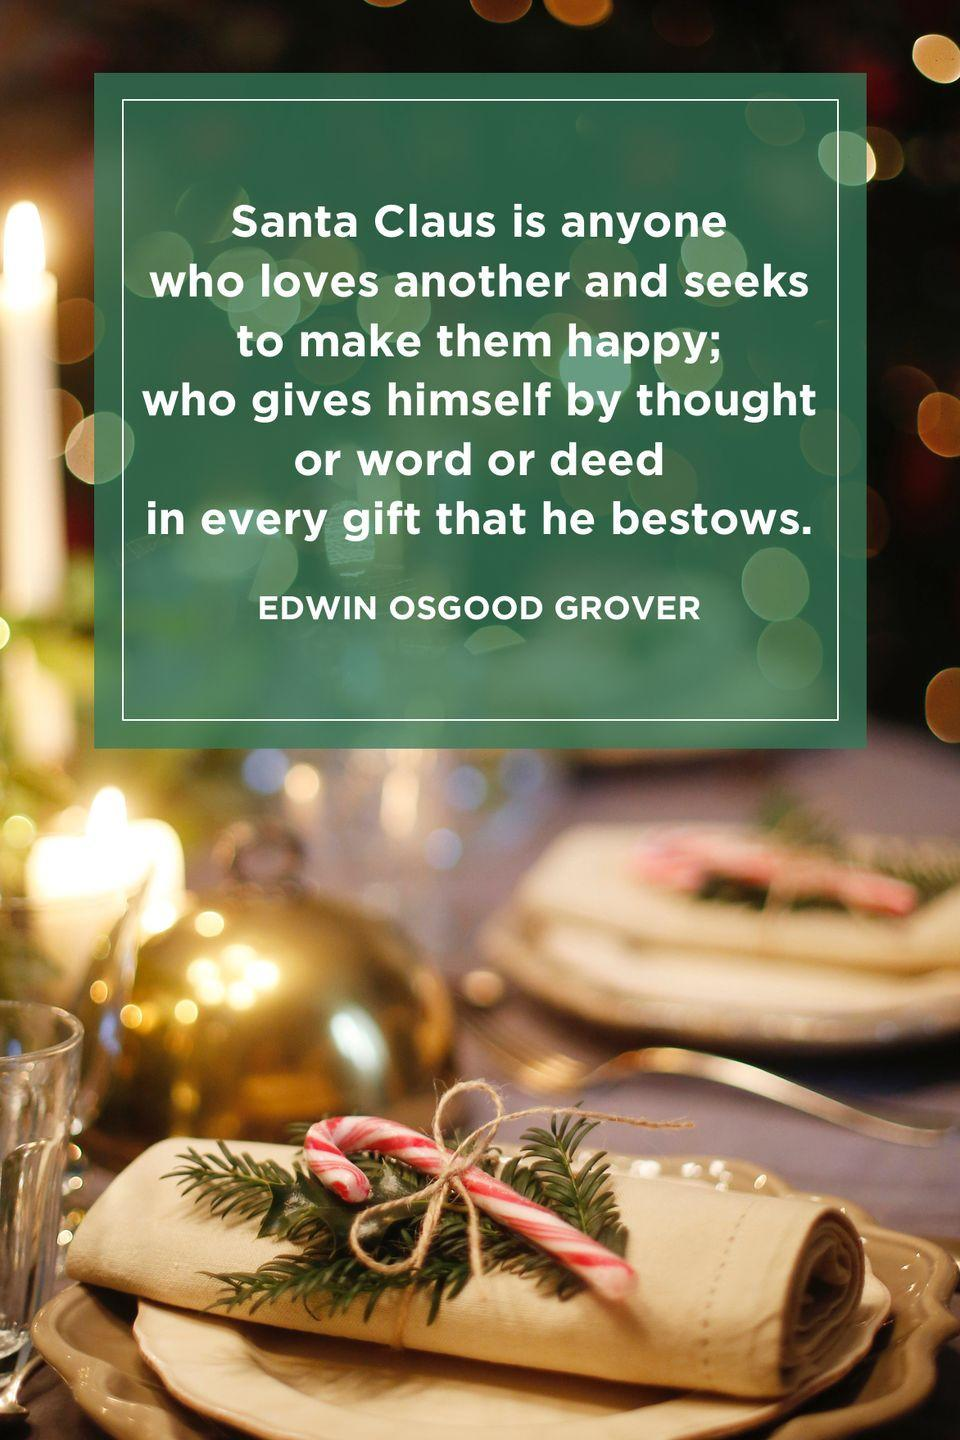 """<p>""""Santa Claus is anyone who loves another and seeks to make them happy; who gives himself by thought or word or deed in every gift that he bestows.""""</p>"""